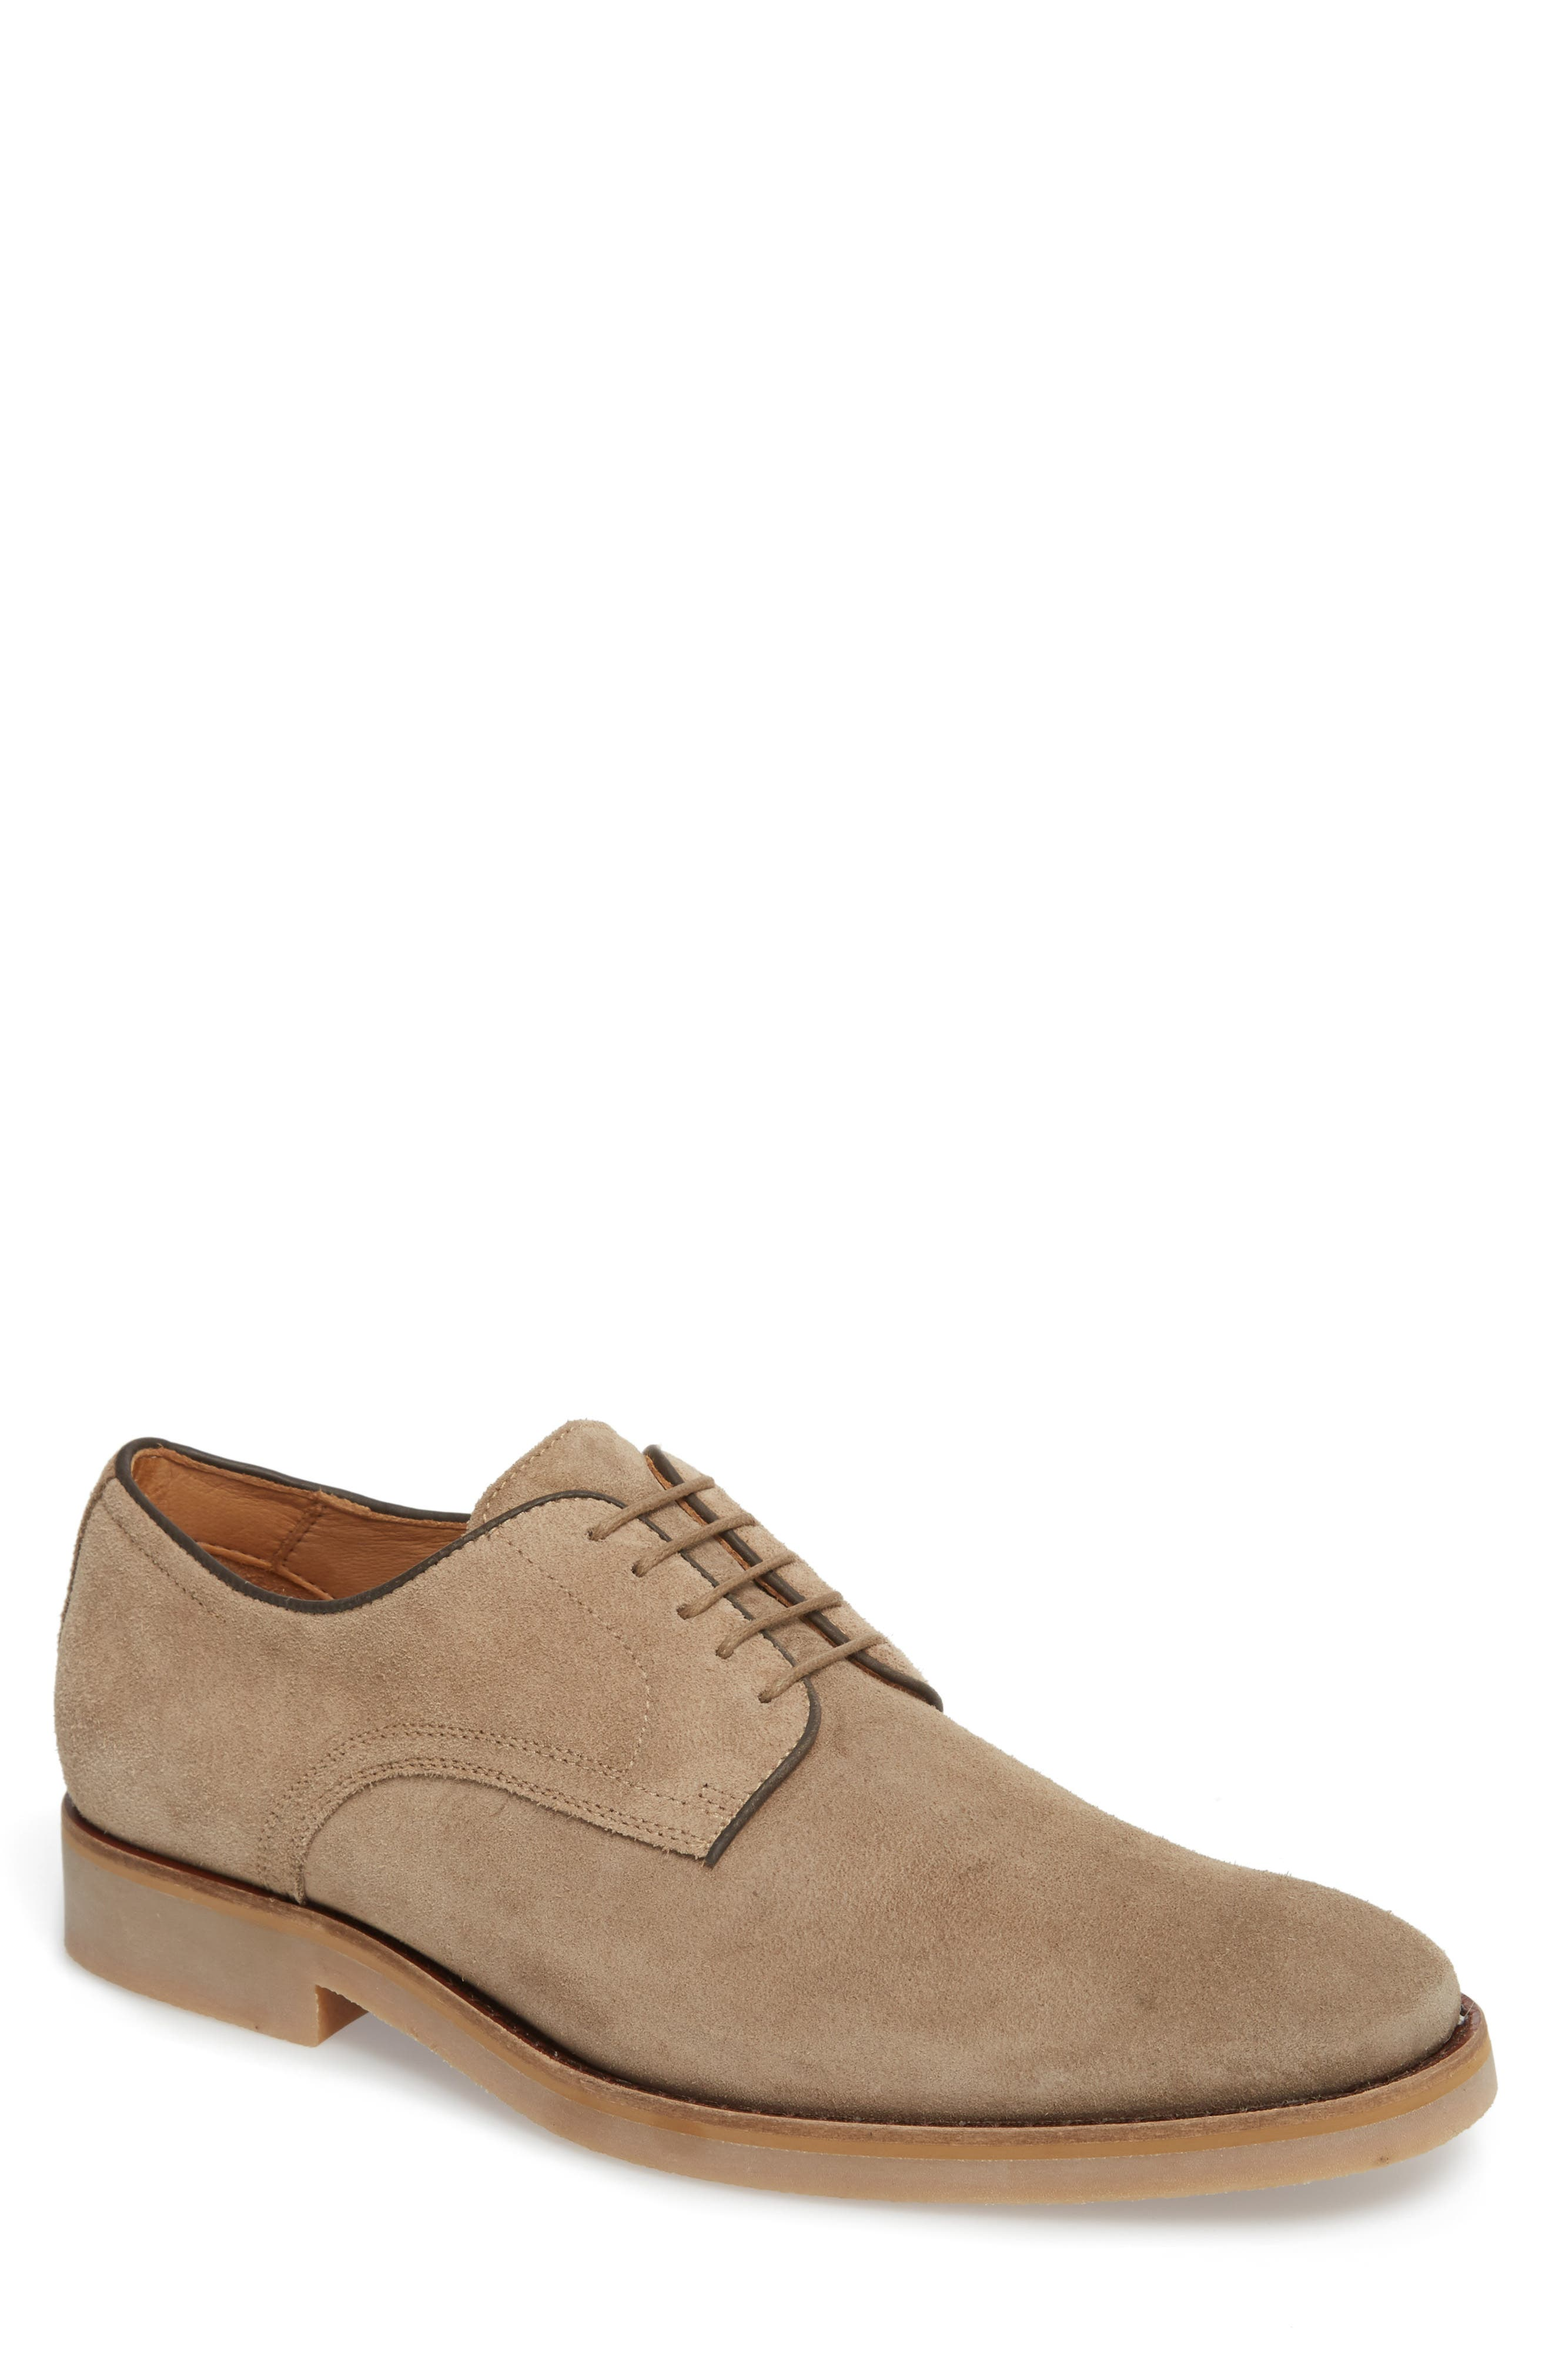 John W. Nordstrom® Santino Plain Toe Derby (Men)